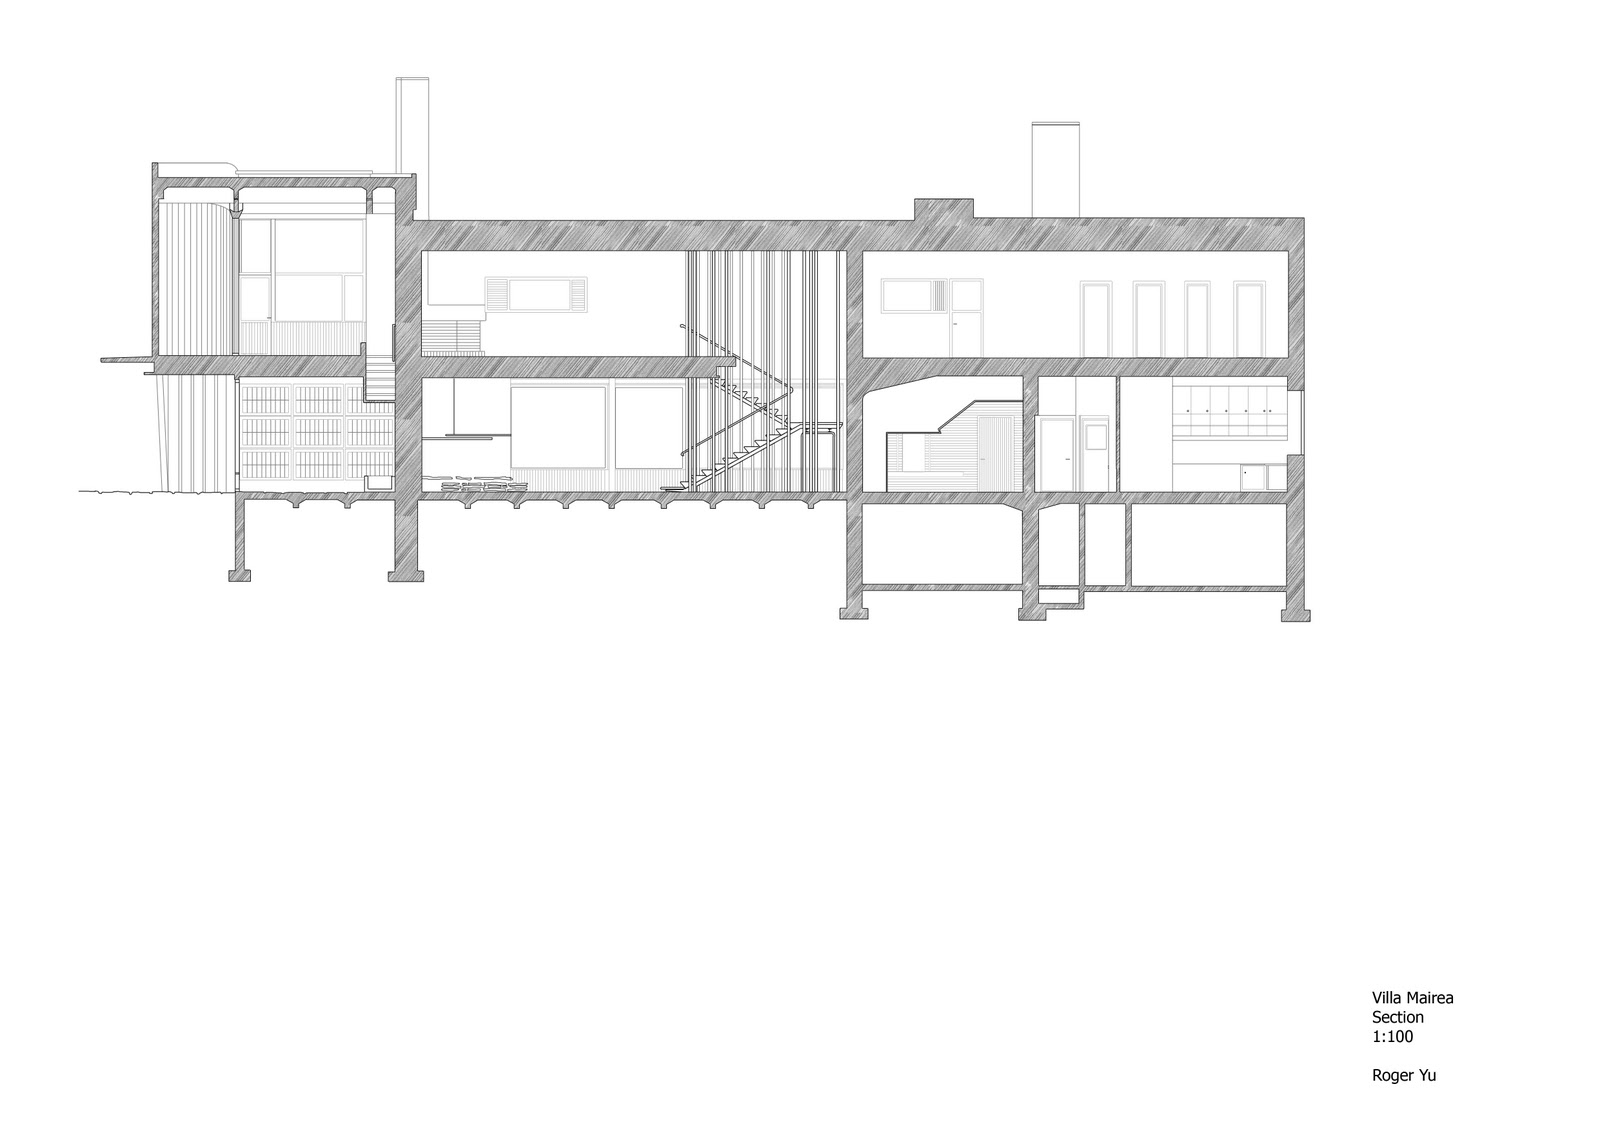 Architectural Studio 3: Drawings of Villa Mairea